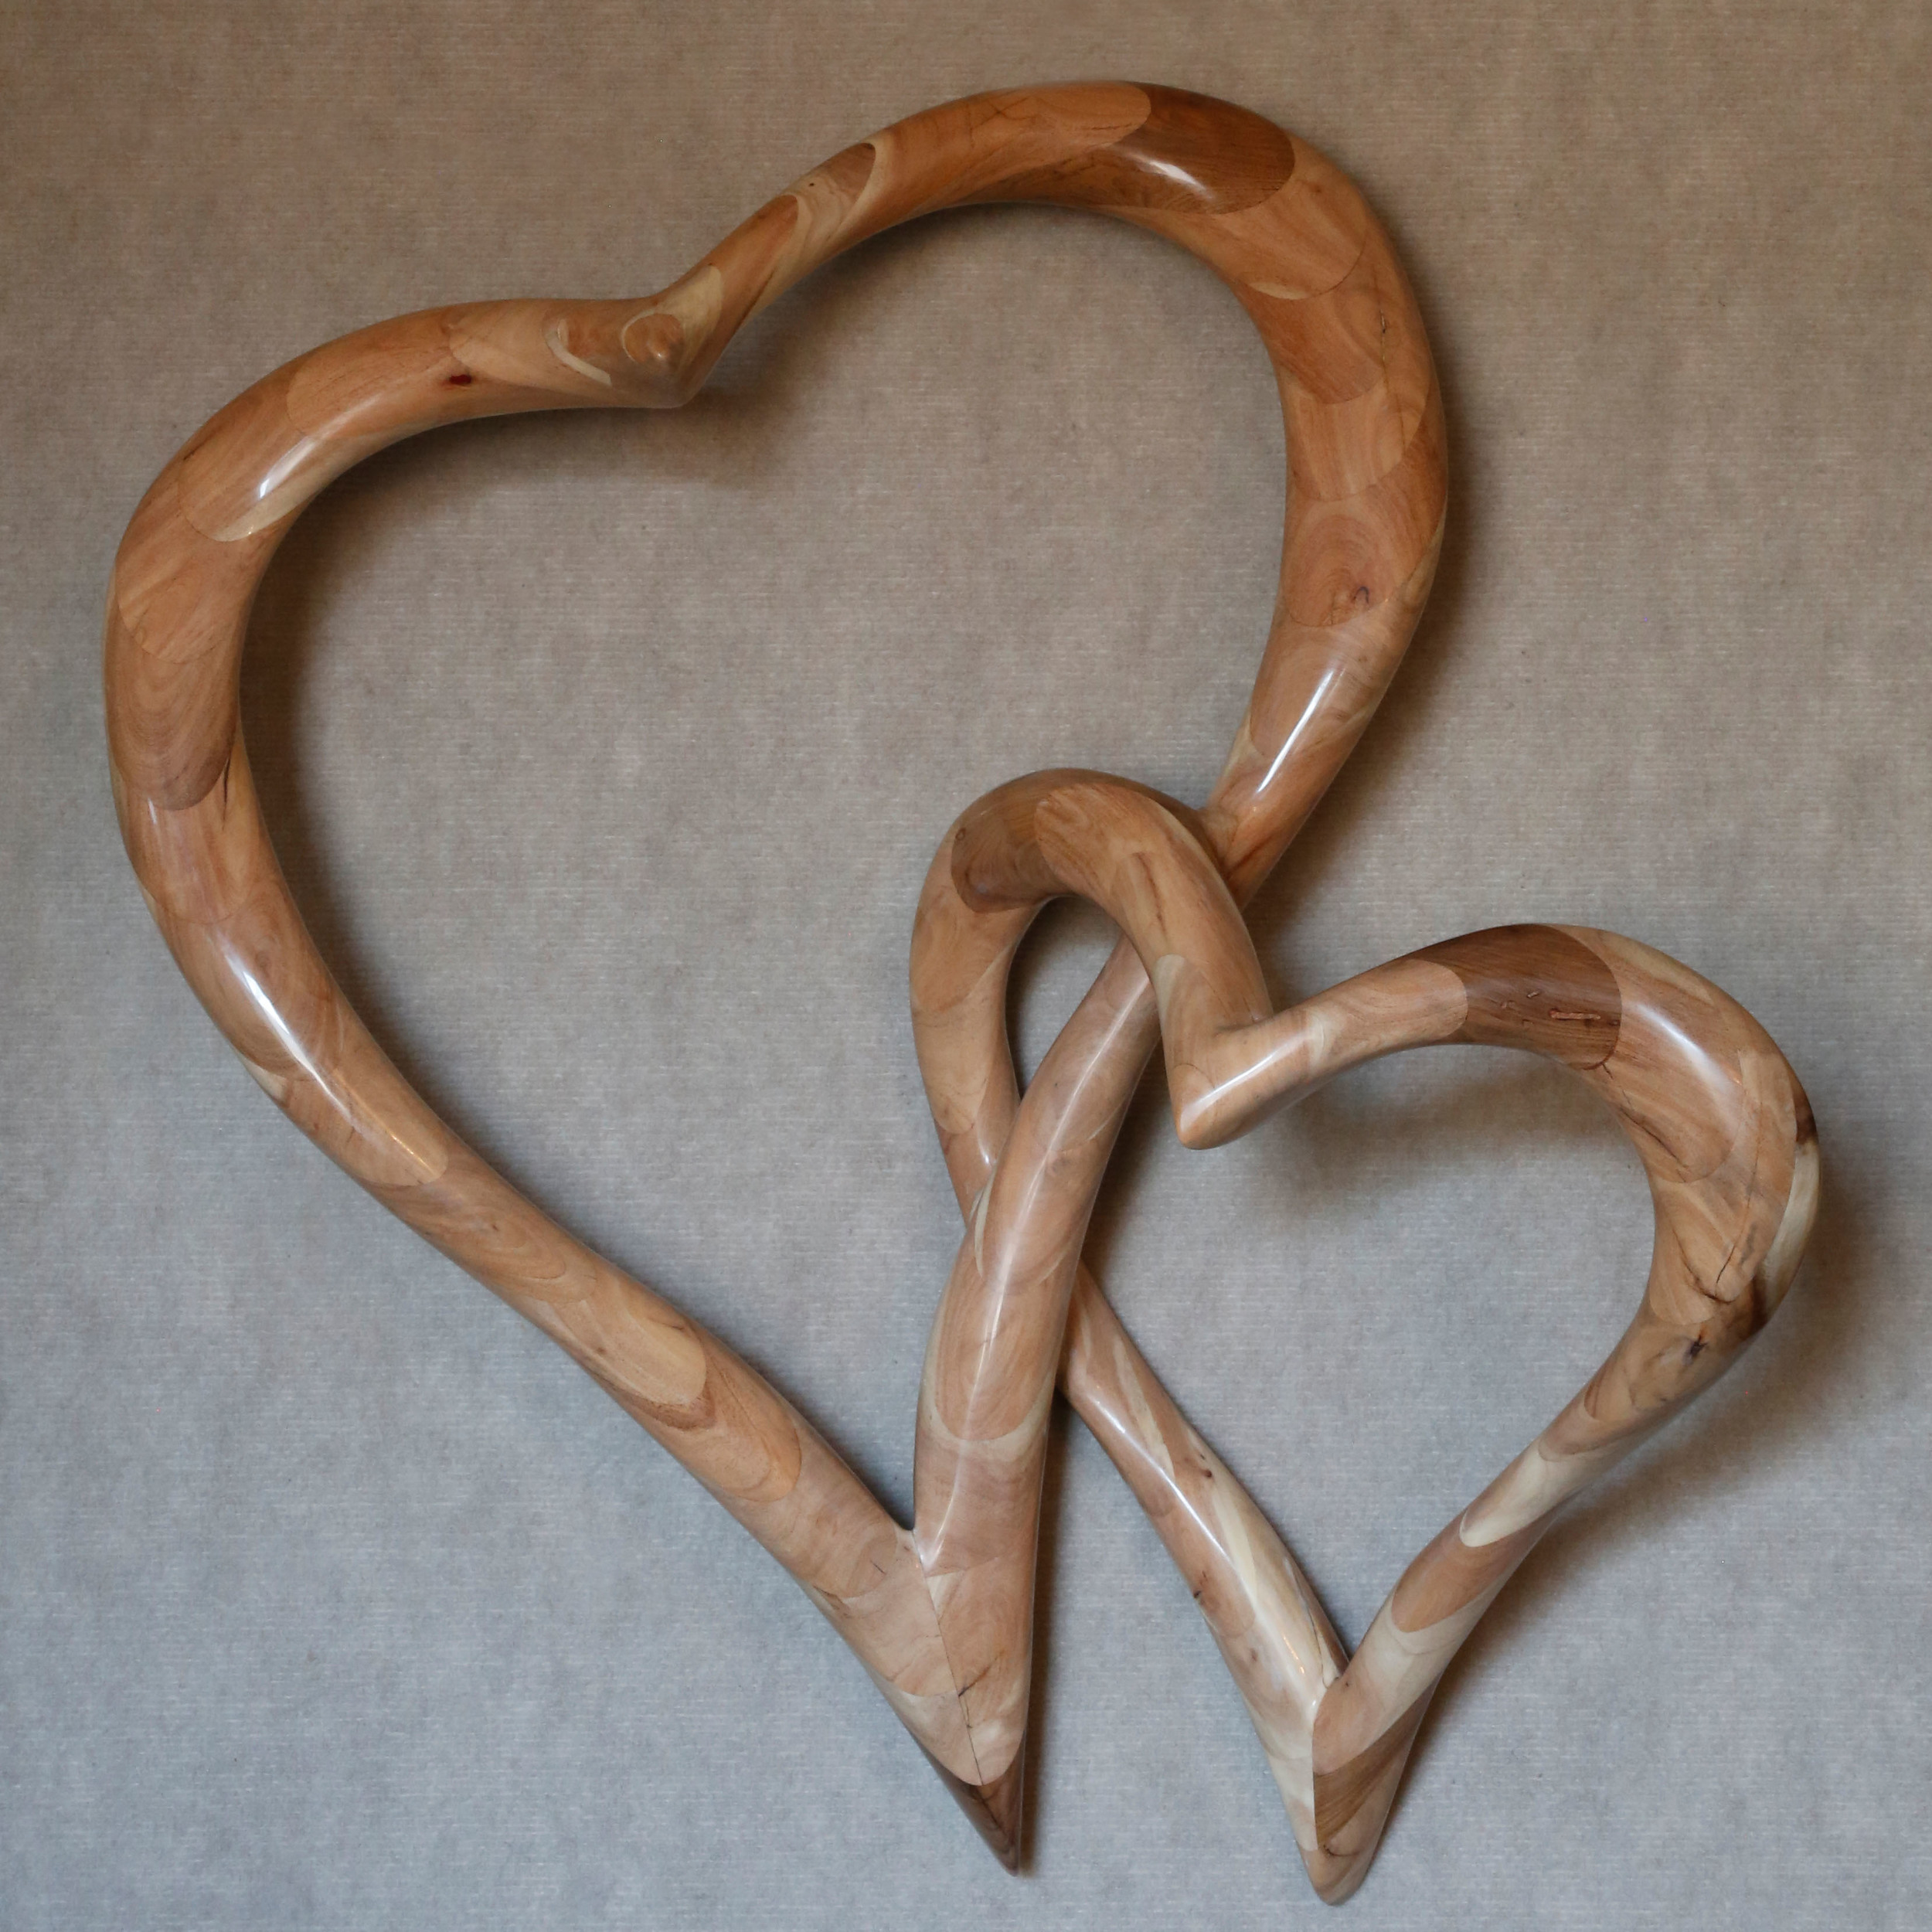 3232_Entwined Hearts_12x12.jpg